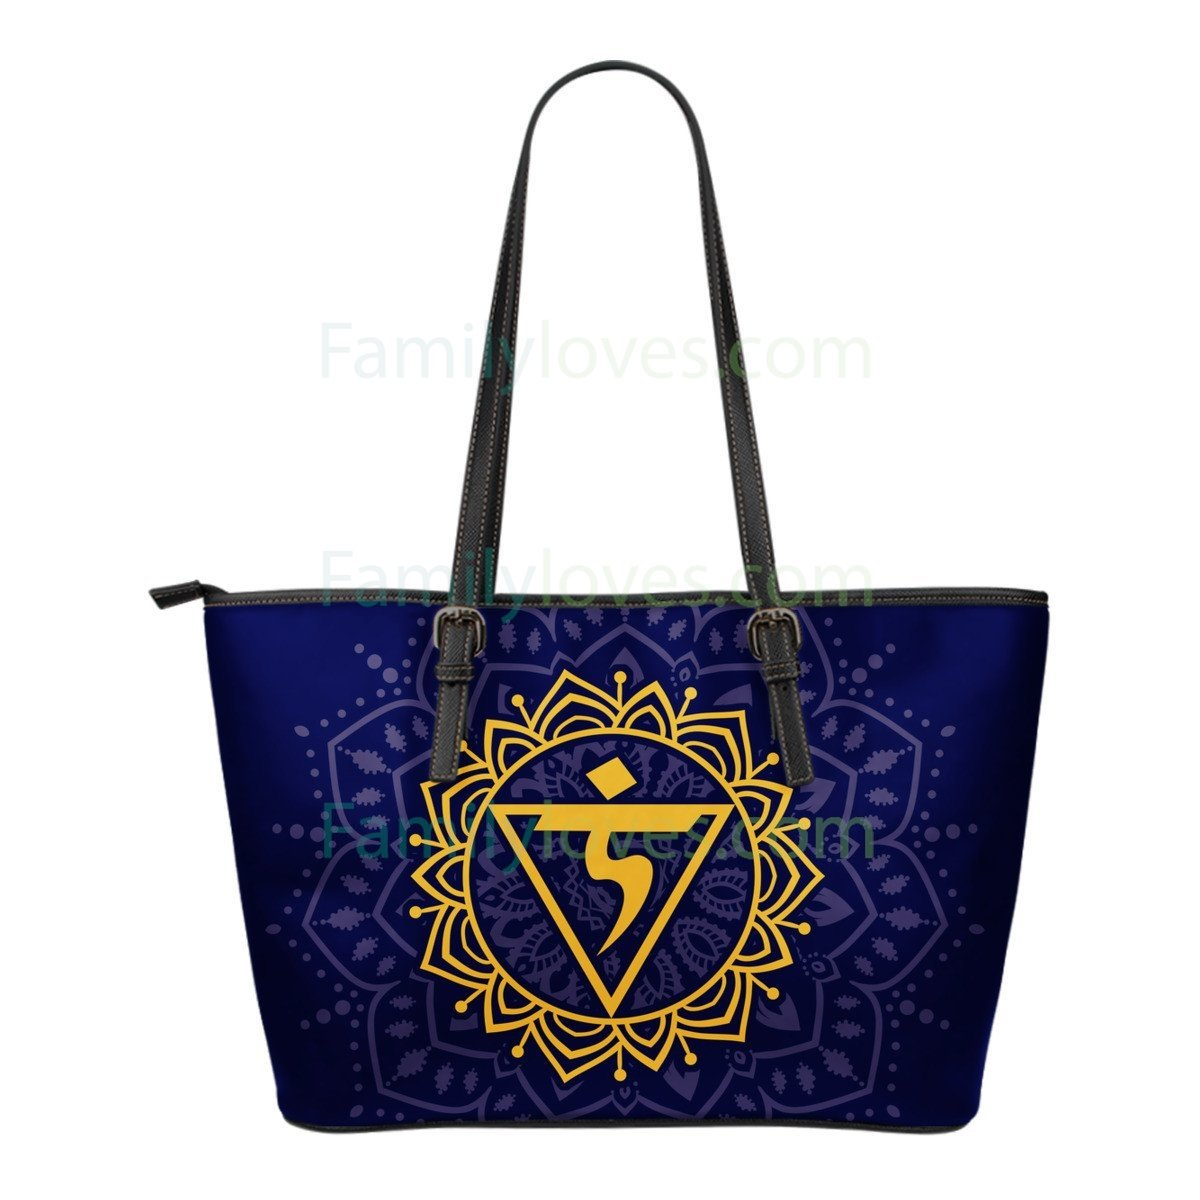 Where Can I Buy Yoga Bags 5